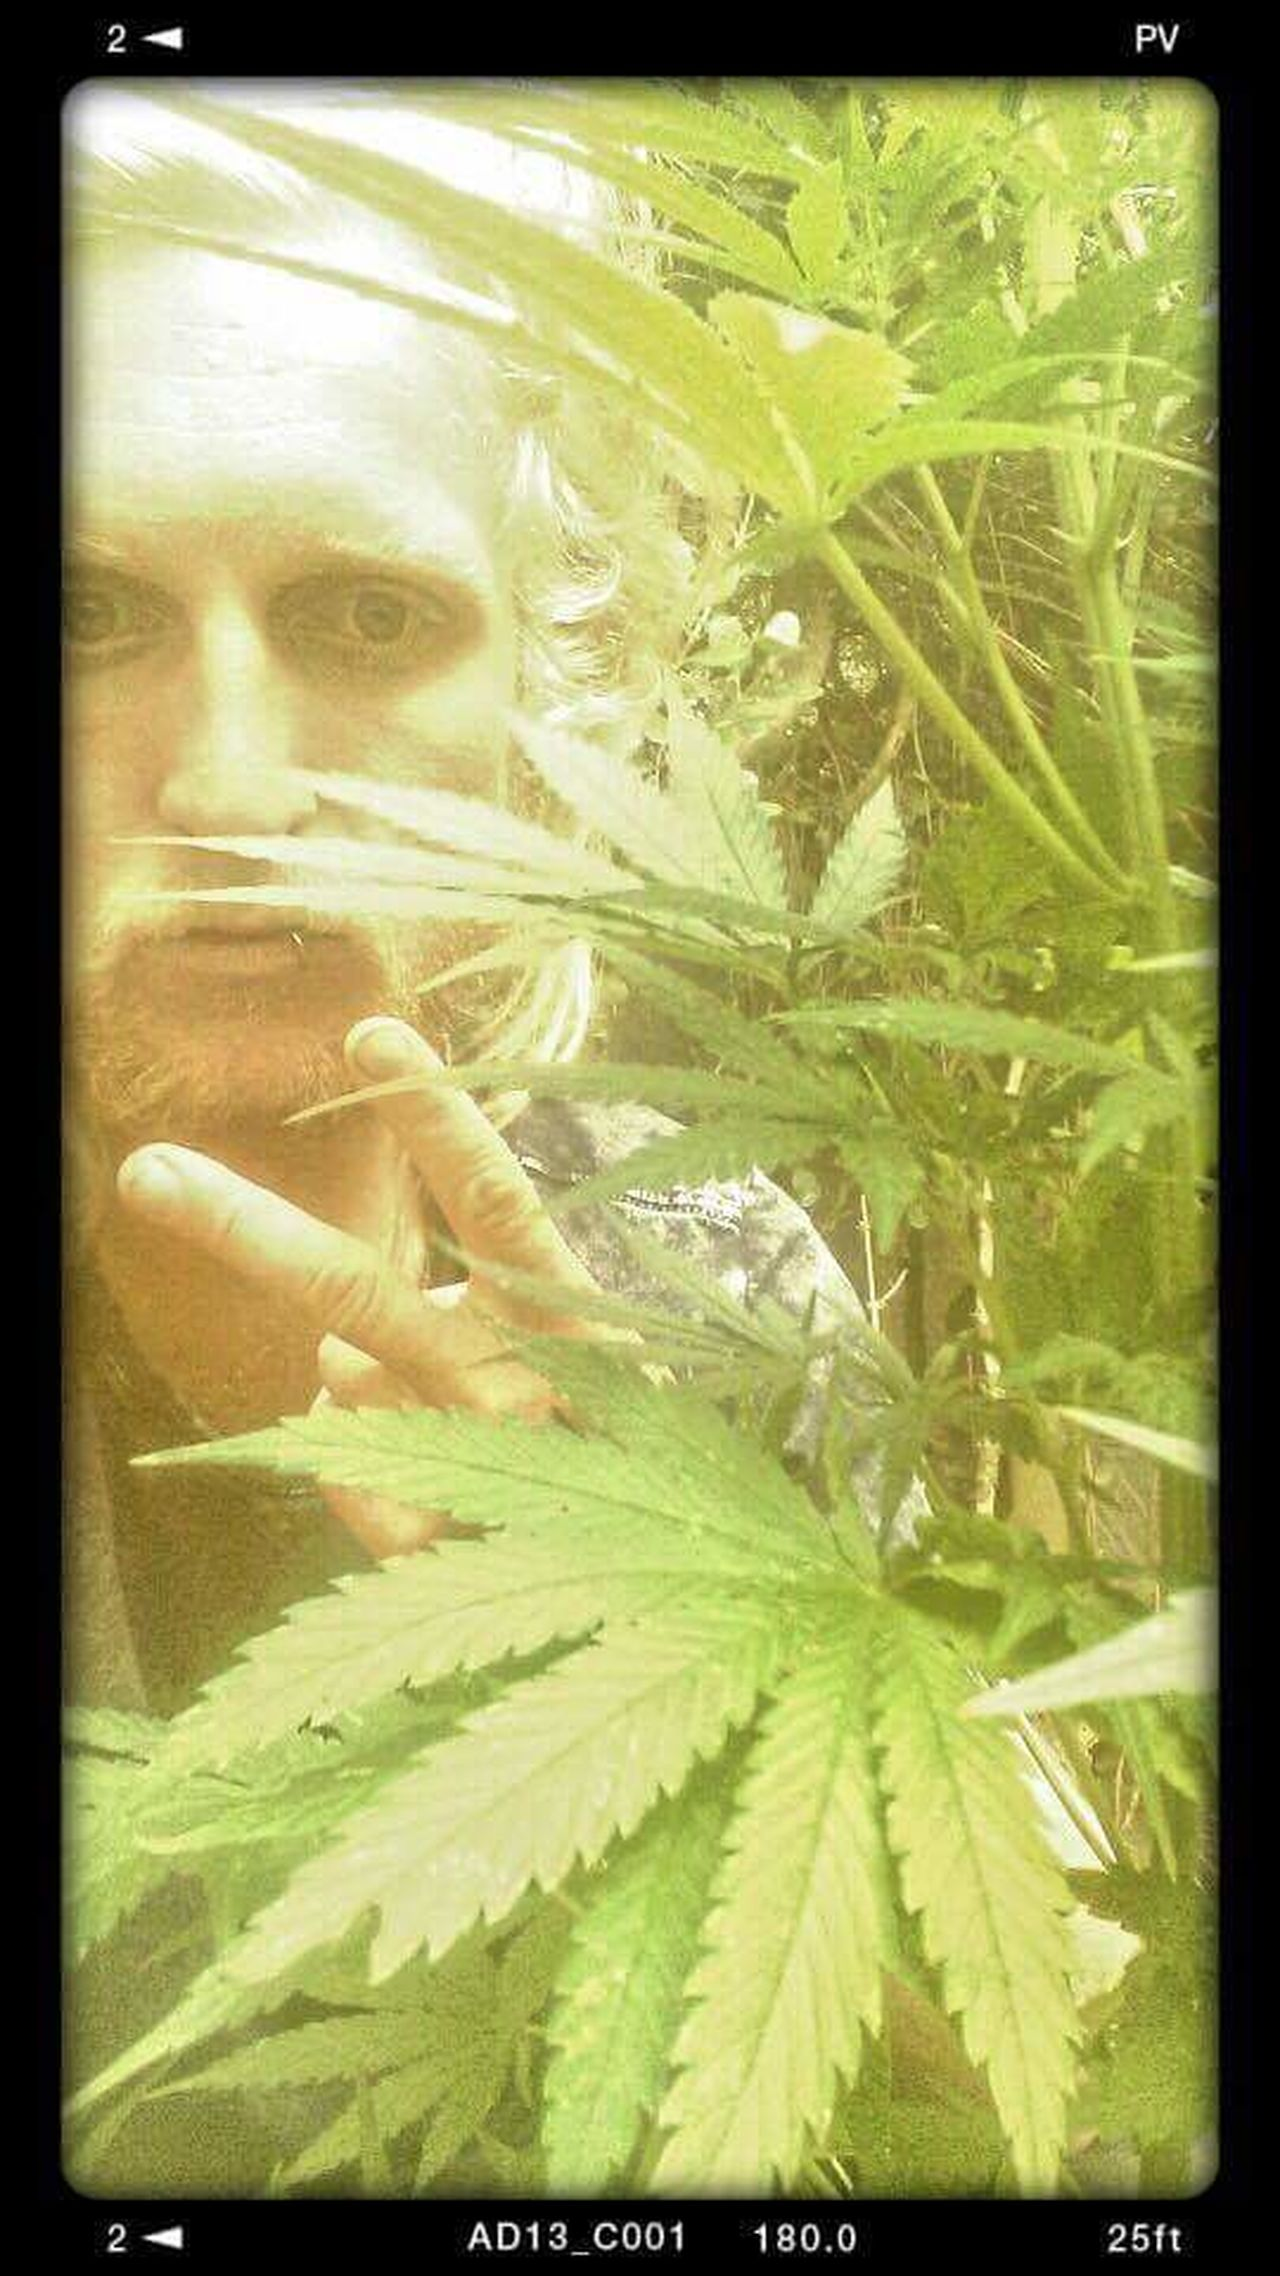 420 Smoker Photography Photooftheday Smokeweedeveryday Weed Buds❤ Faces Of EyeEm That's Me Self Portrait Photo Of The Day Hustling Enjoying Life CreativePhotographer Photoart Me Check This Out Androidography Selfie ✌ Professionalphotography Eye Em Best Shots Ridersonthestorm Letmetakeaselfie FacesOfEyeEm Relaxing Hello World